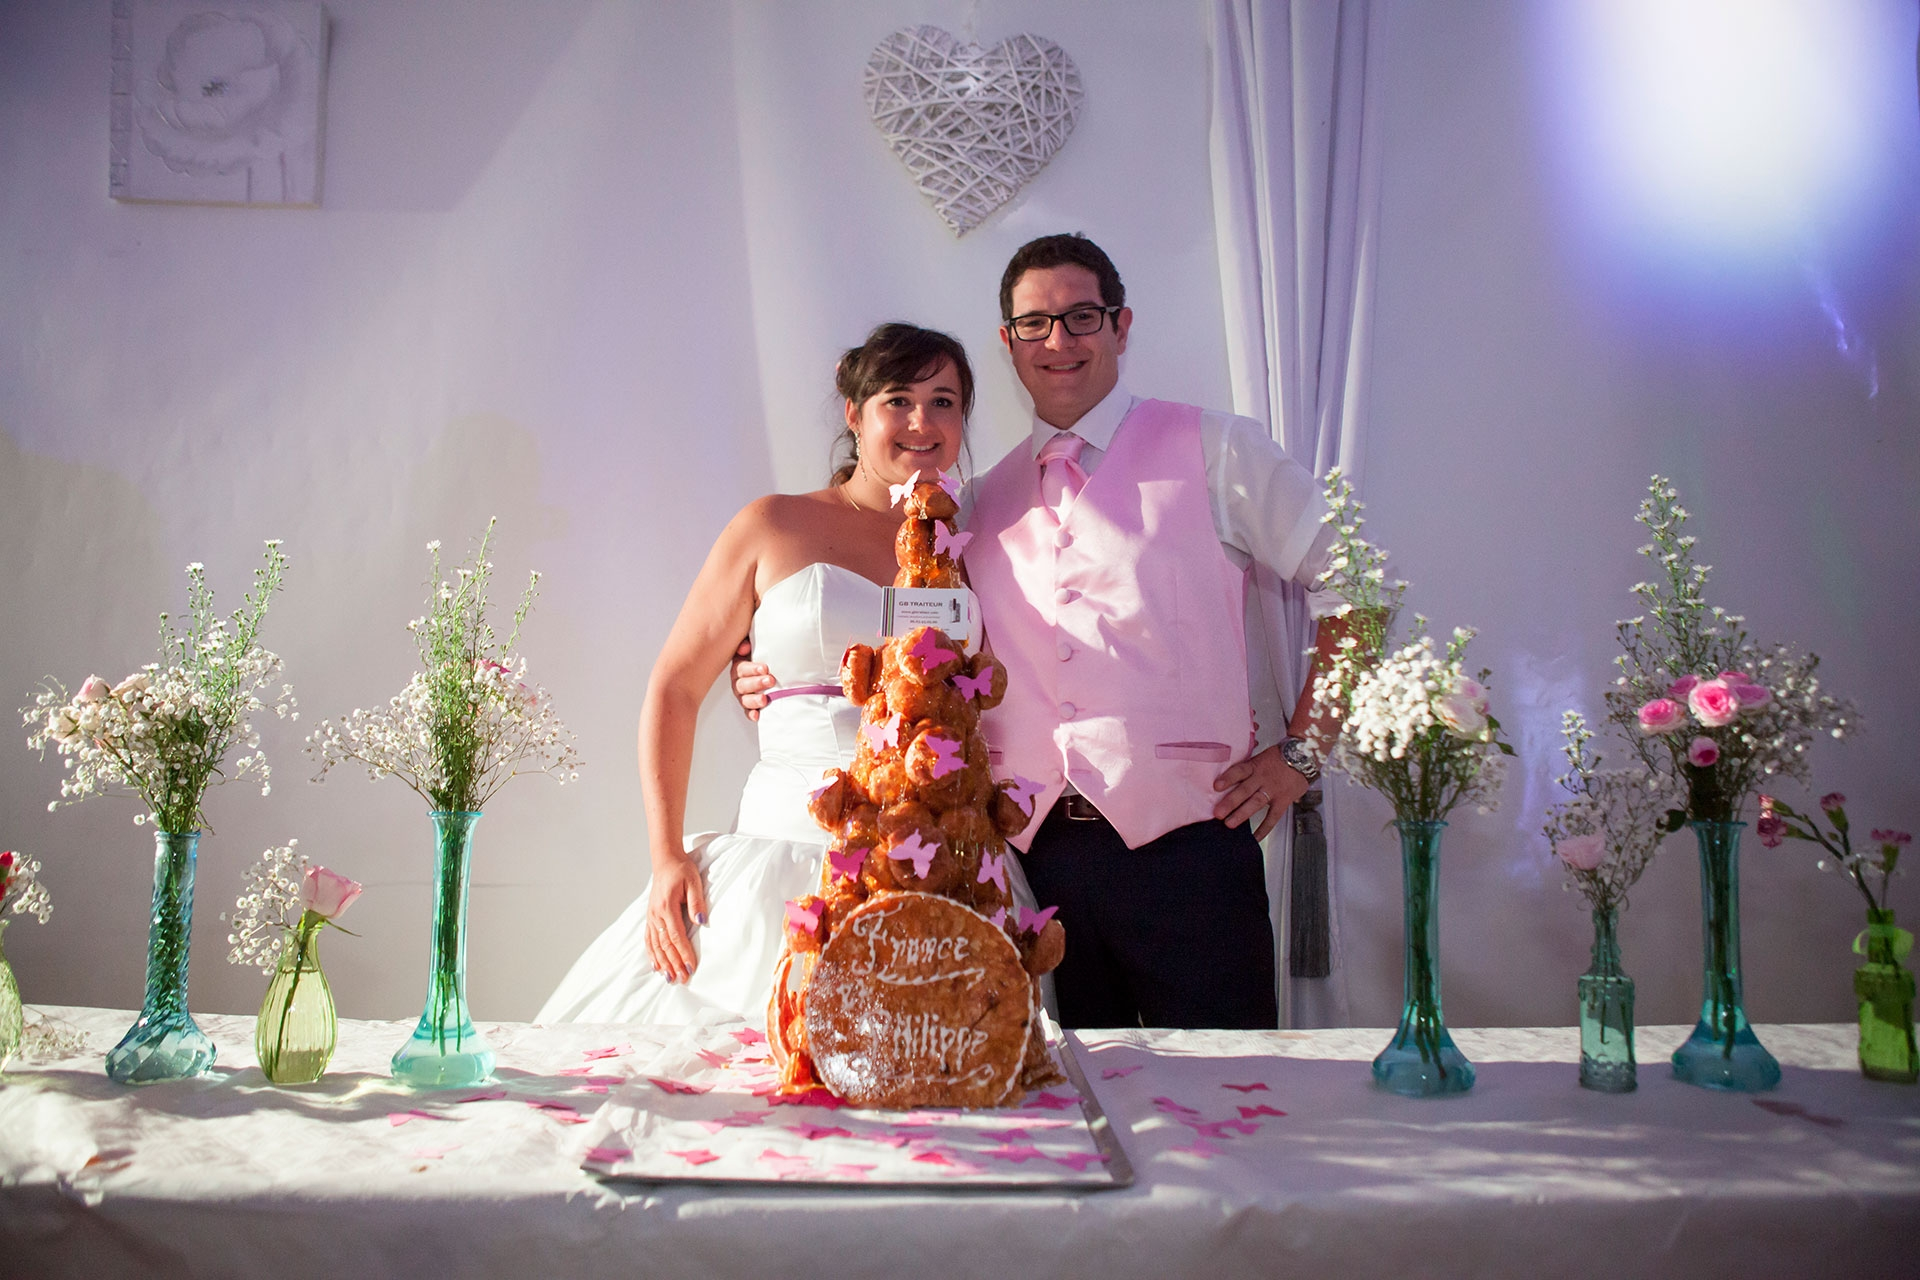 particuliers-evenements-mariages-oui-france&philippe-80